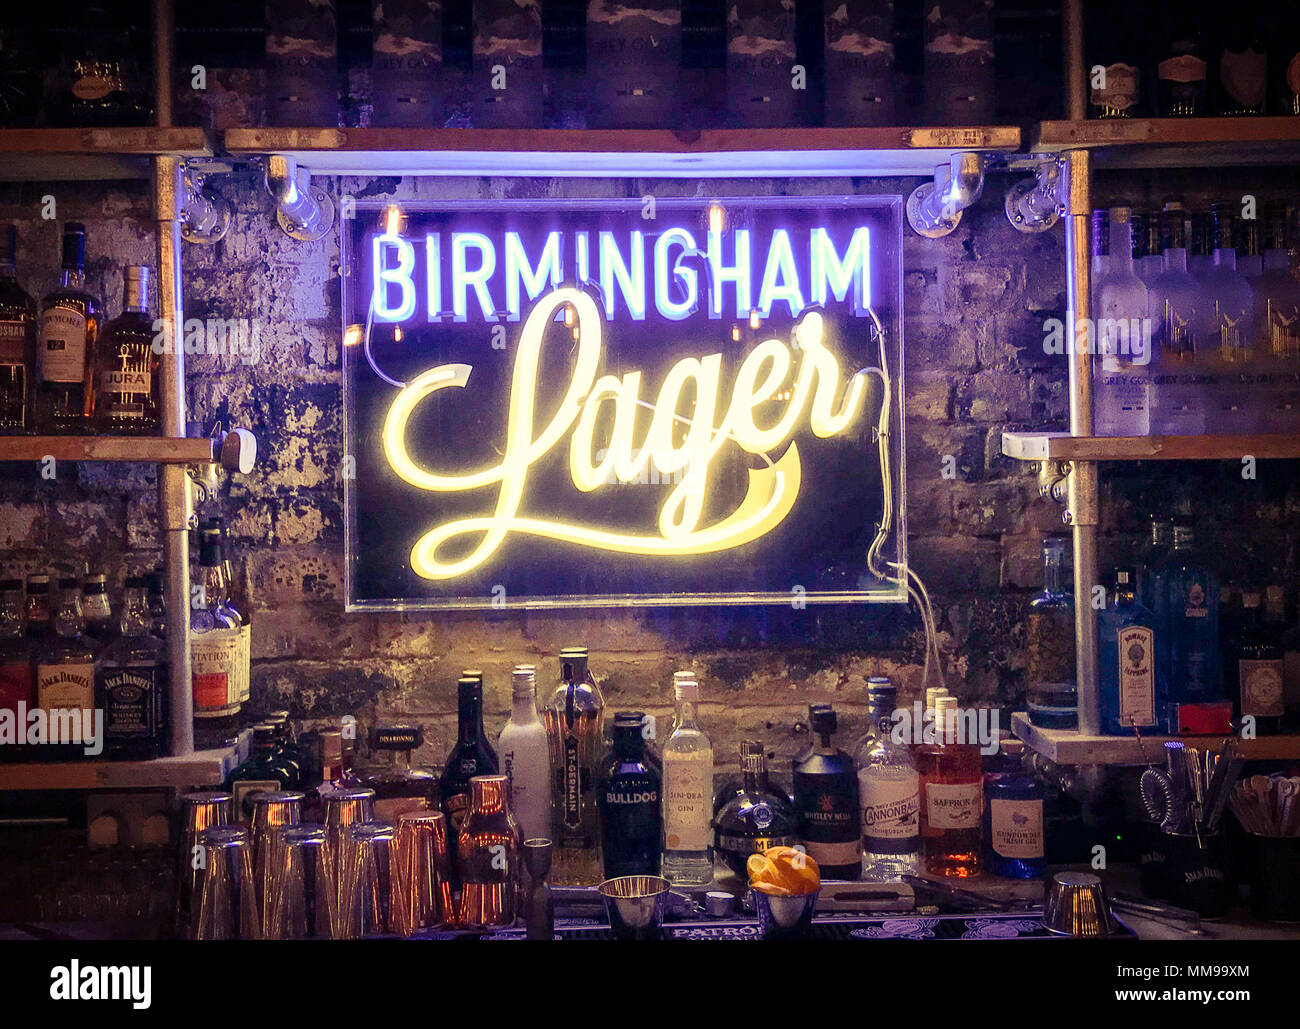 GoTonysmith,@HotpixUK,Birmingham beer,beer,beers,lager,lagers,ales,craft,brewery,craft brewery,craft beer brewery,India,Indians,from,Snow Hill,Birmingham,B3 1EU,B3,Snowhill,bar,pub,interior,inside,sign,Electric sign,Indian Brewery,Brum,tourist,travel,English,lit,evening,drinks,drinking,alcohol,alcohol in Birmingham,alcohol abuse,enjoy drinking